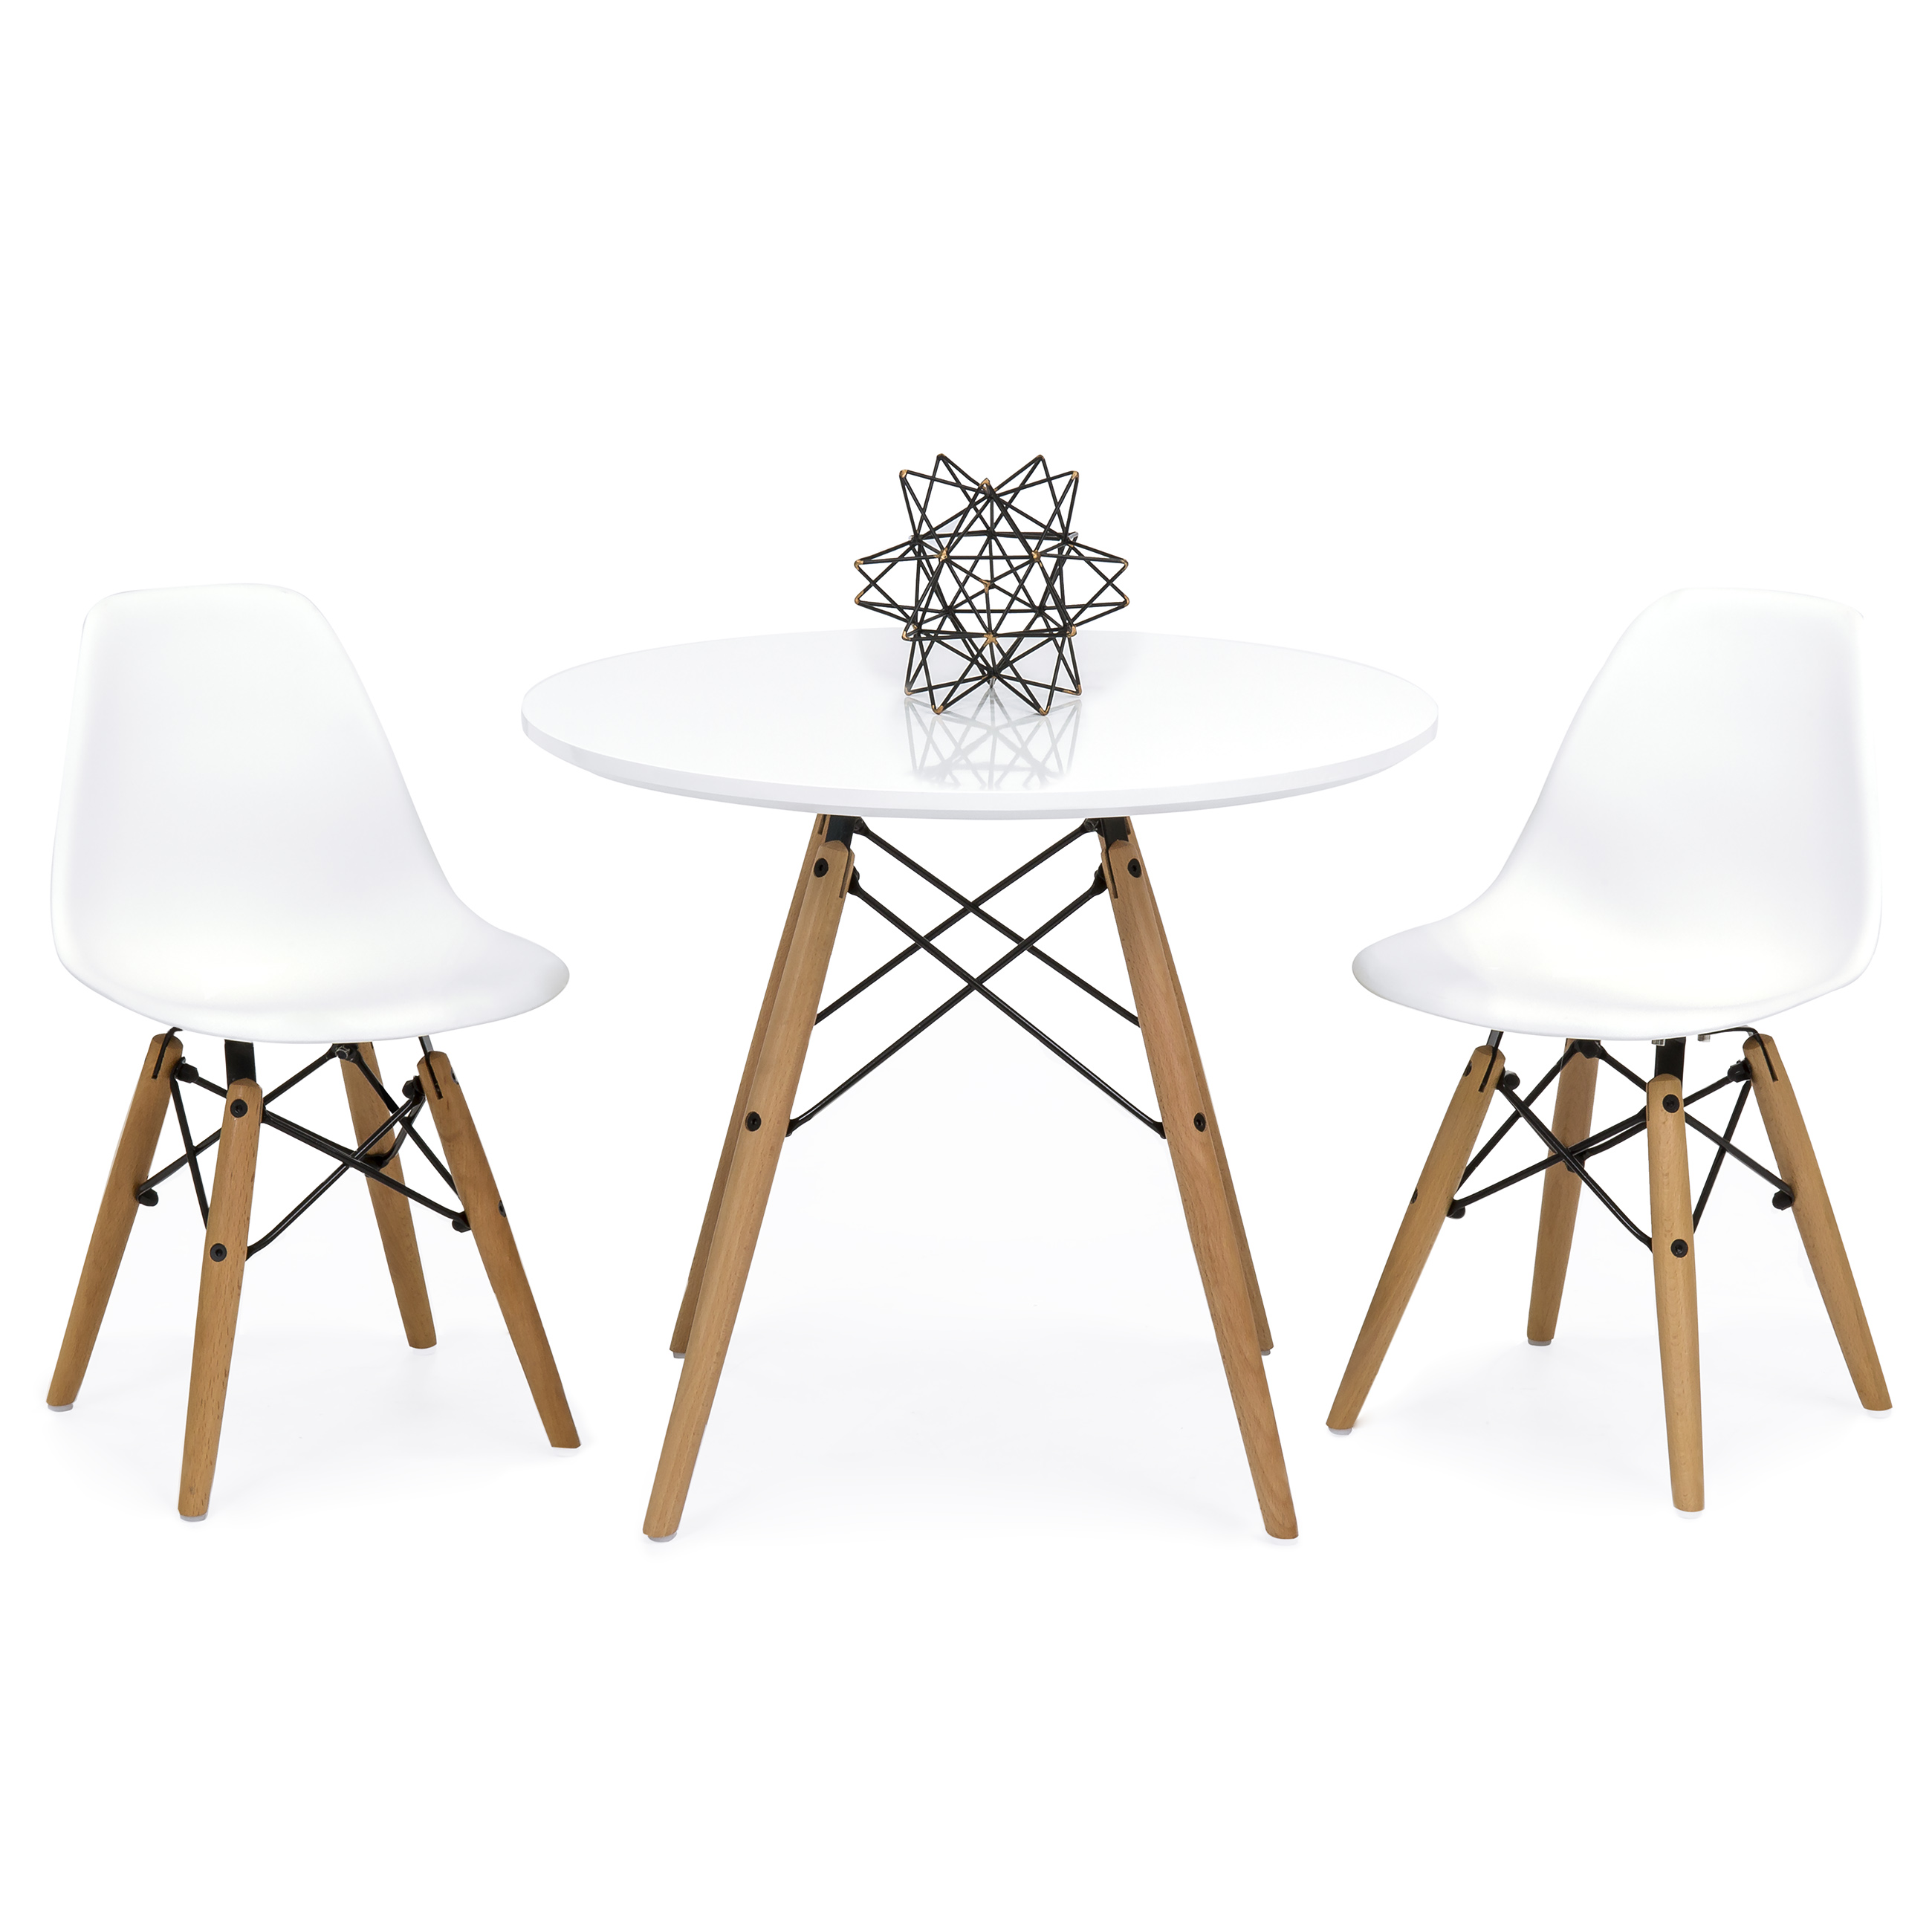 Best Choice Products Kids Mid-Century Modern Eames Style Dining Room Round Table Set w 2 Armless Wood Leg Chairs White by Best Choice Products